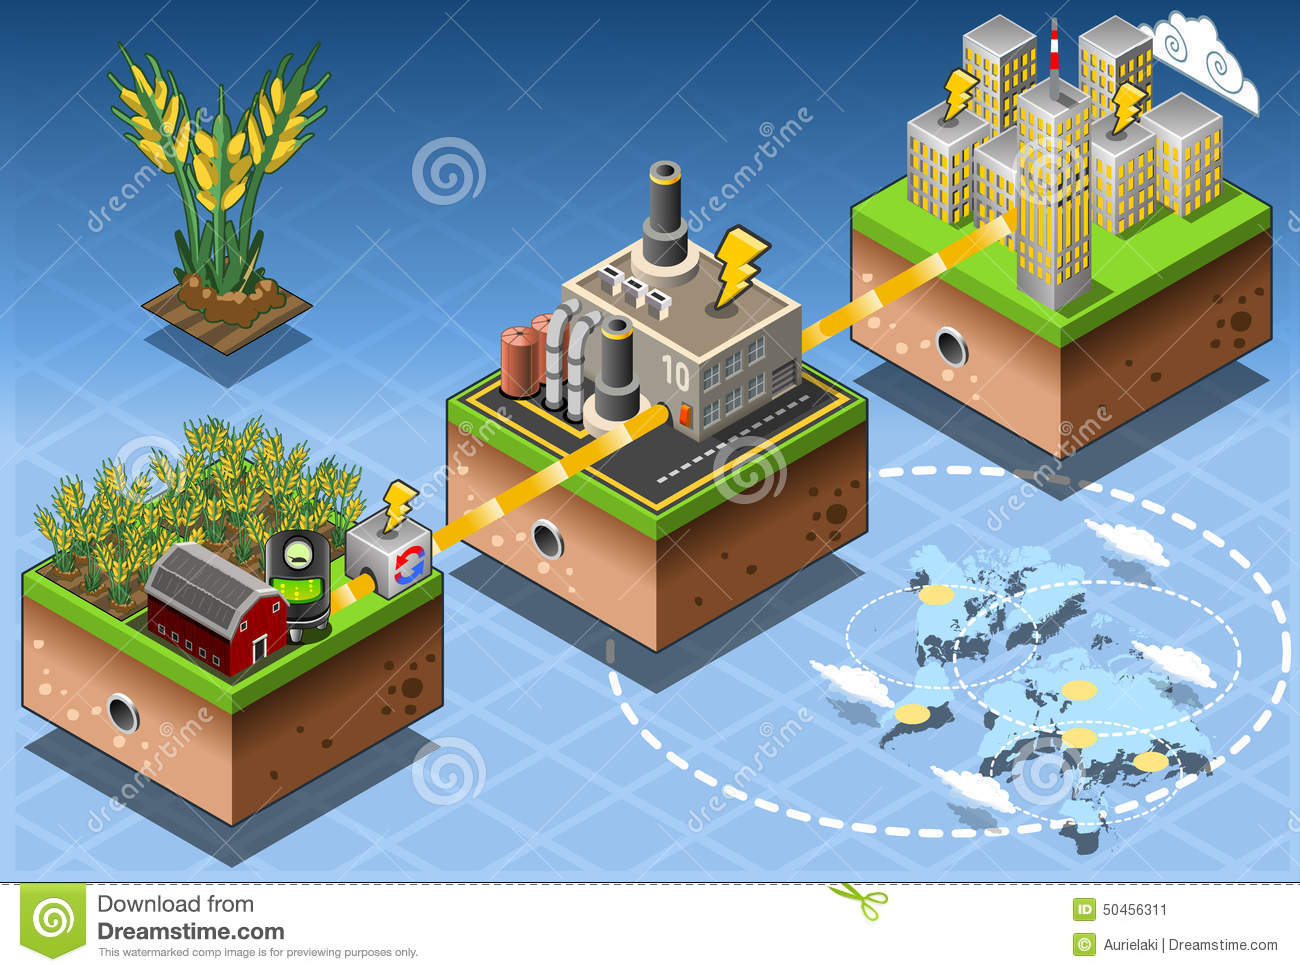 Diagram Of Geothermal Energy Plant Data Schema Power Schematic Isometric Infographic Biomass Source Renewable Flow